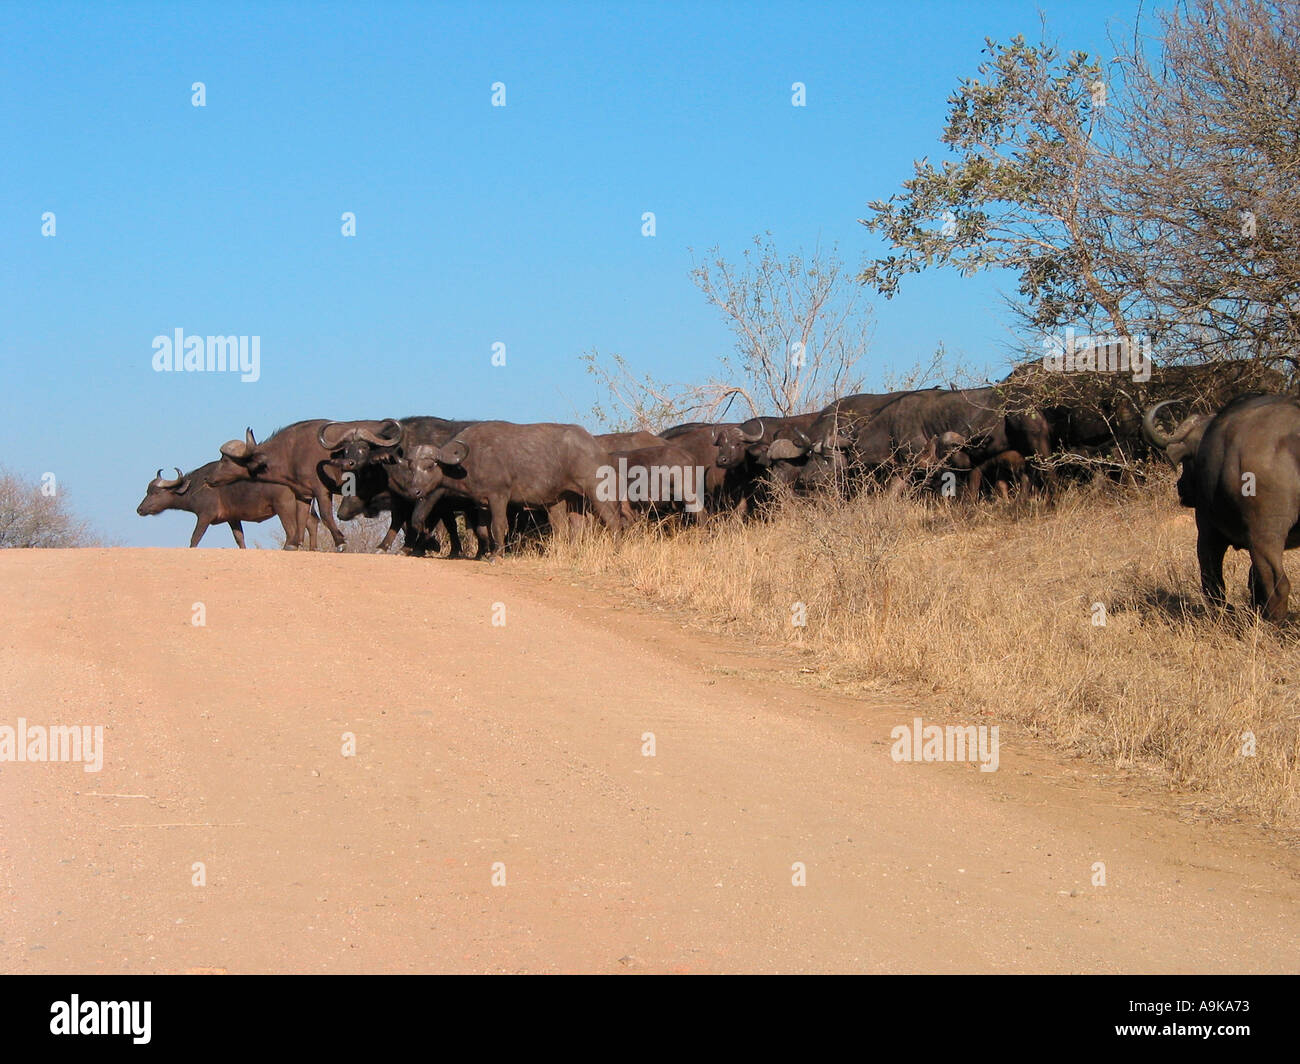 herd of buffalo crossing dirt road Kruger Park south Africa - Stock Image